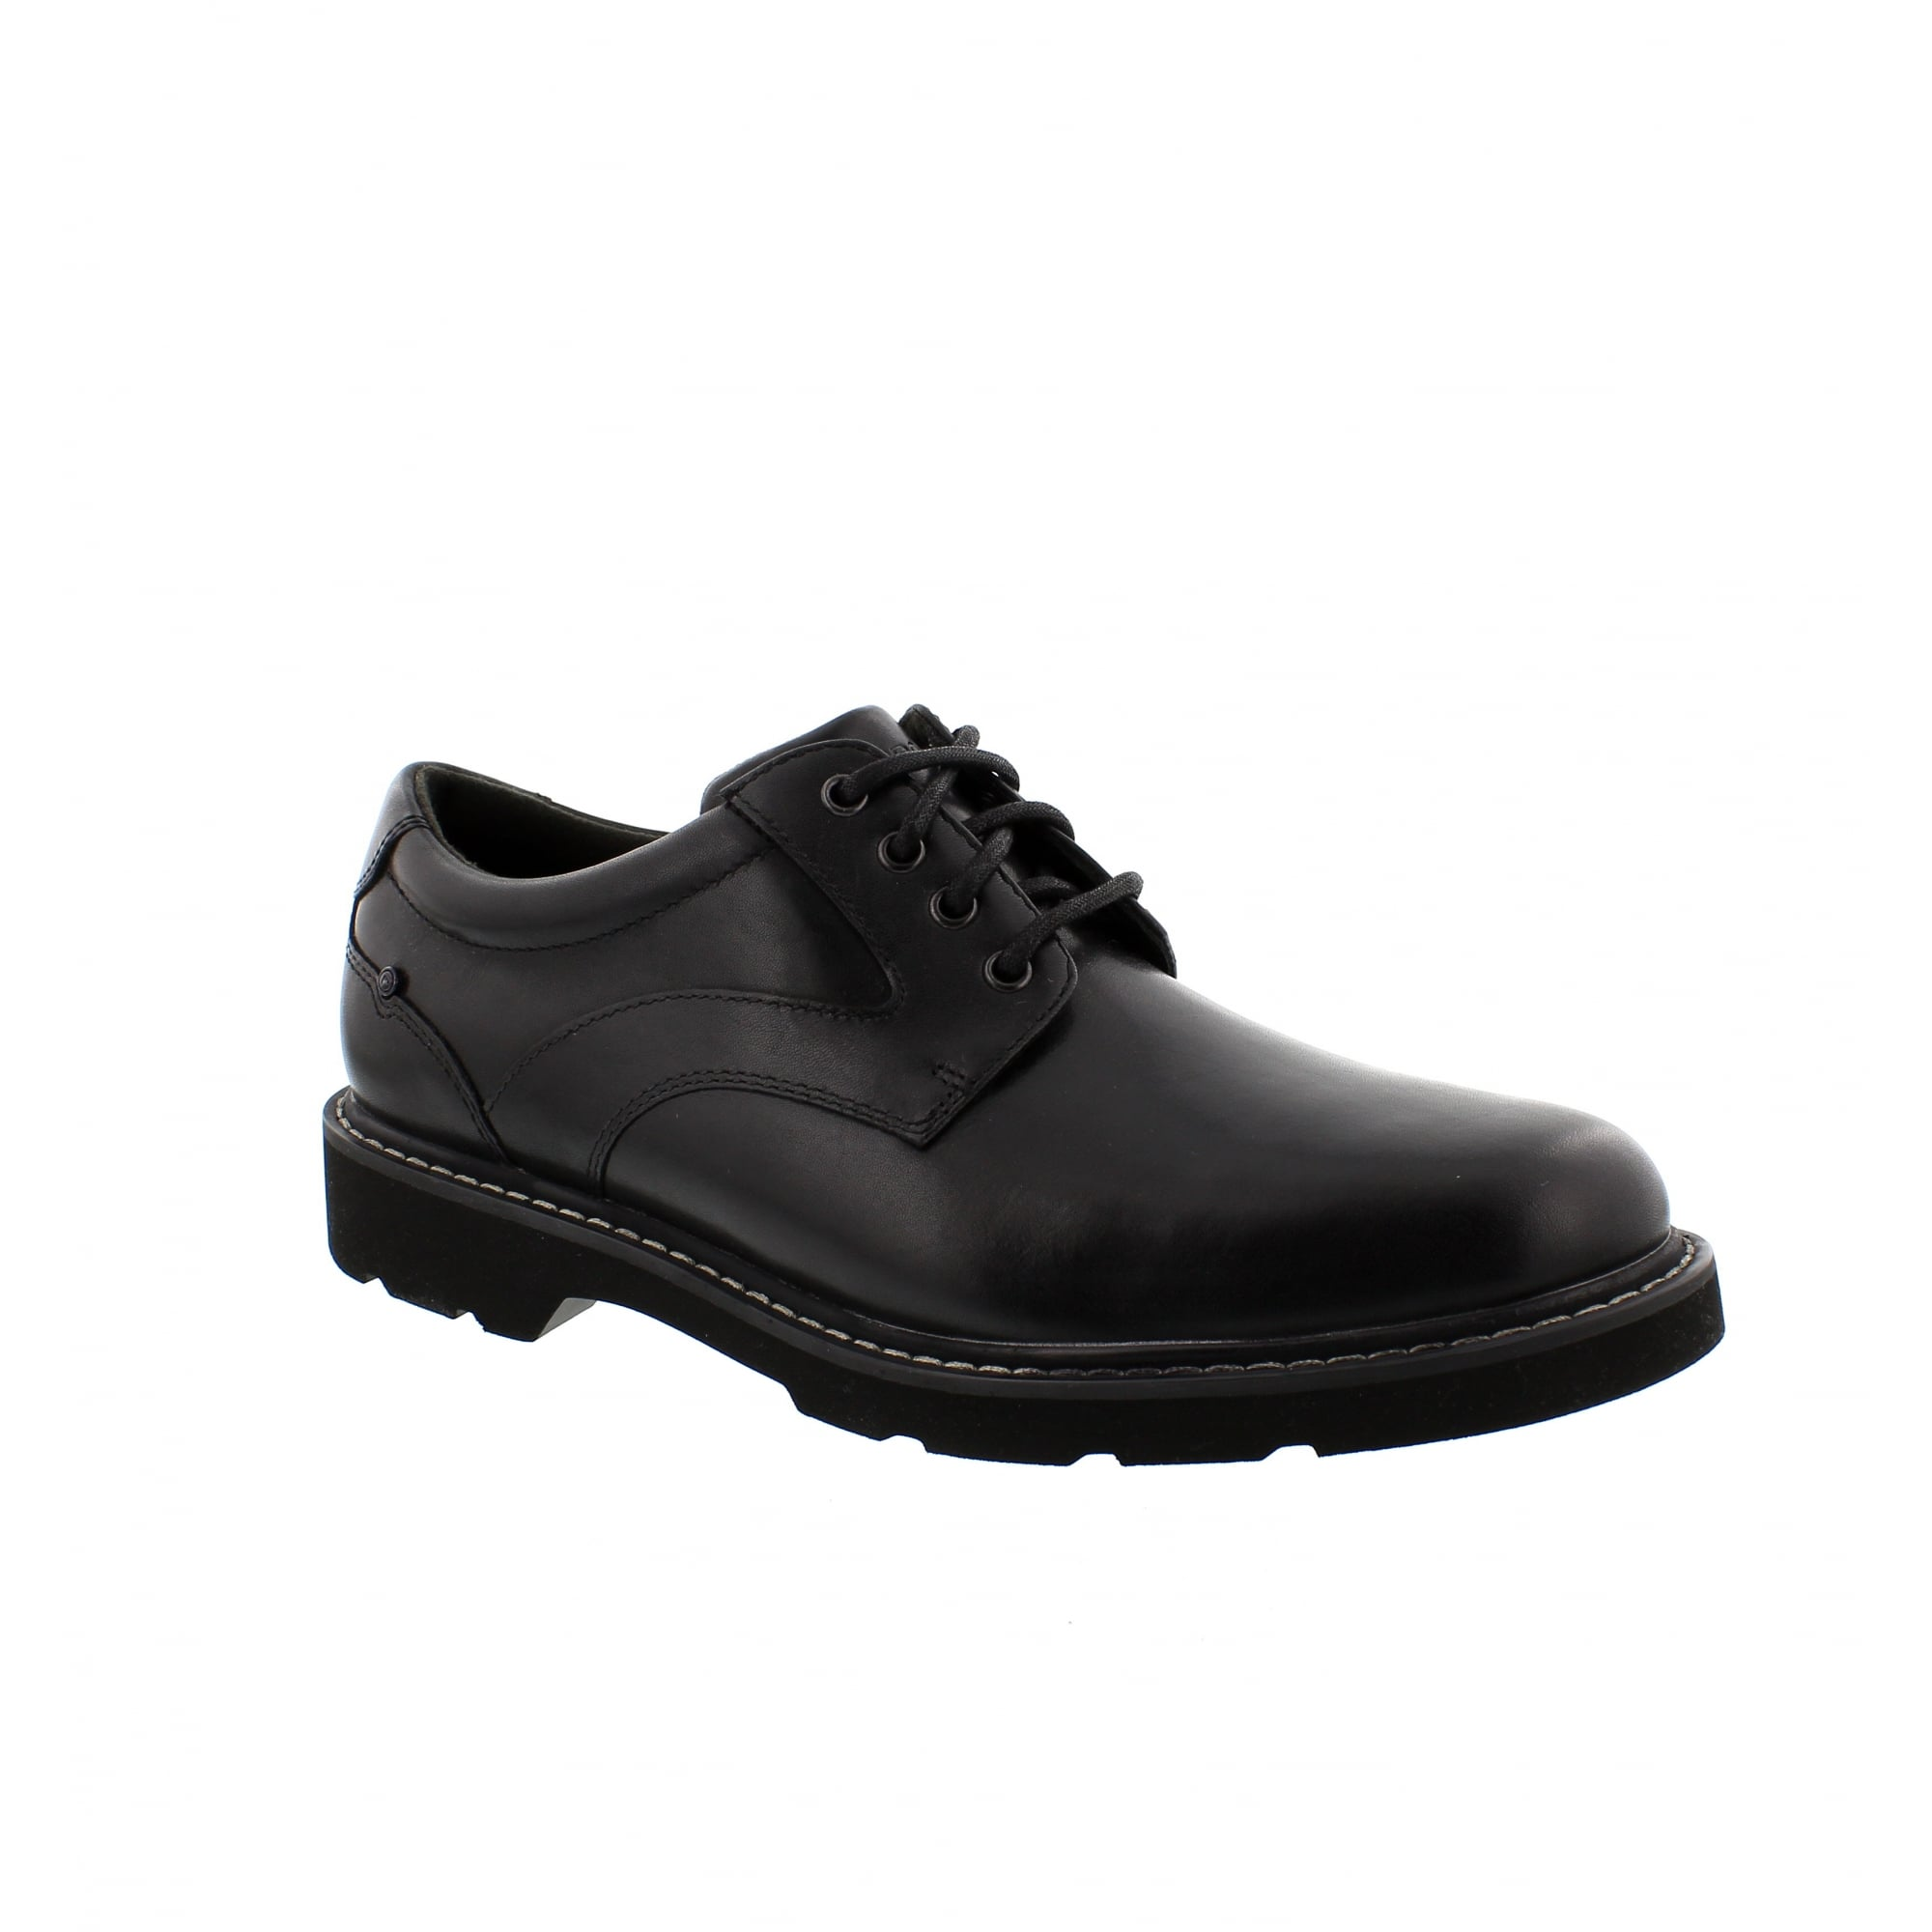 Rockport Charlesview K71053 Mens Shoes